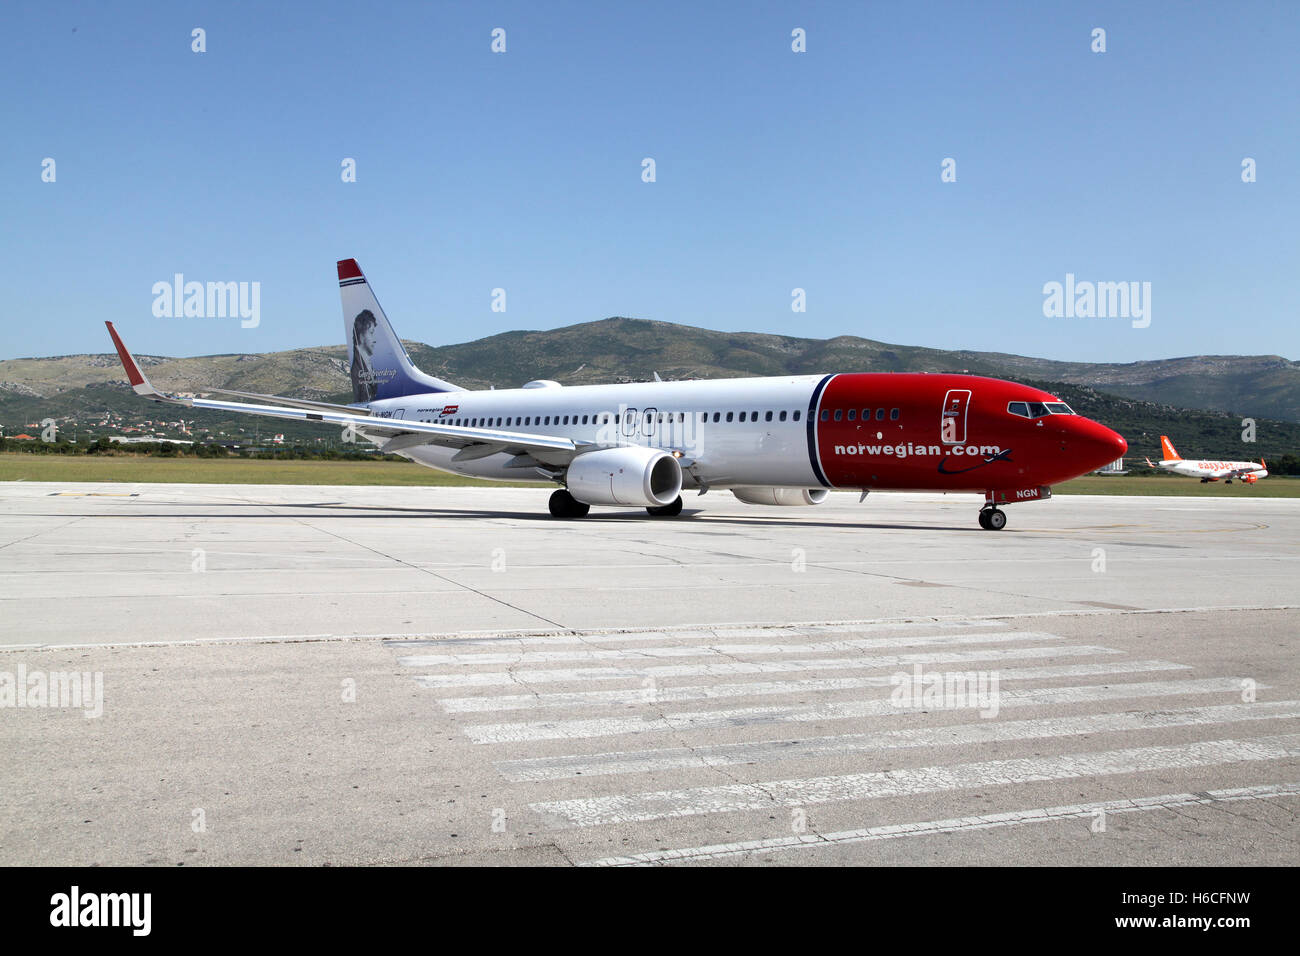 NORWEGIAN air plane at Split airport with new tourists to Croatia - Stock Image